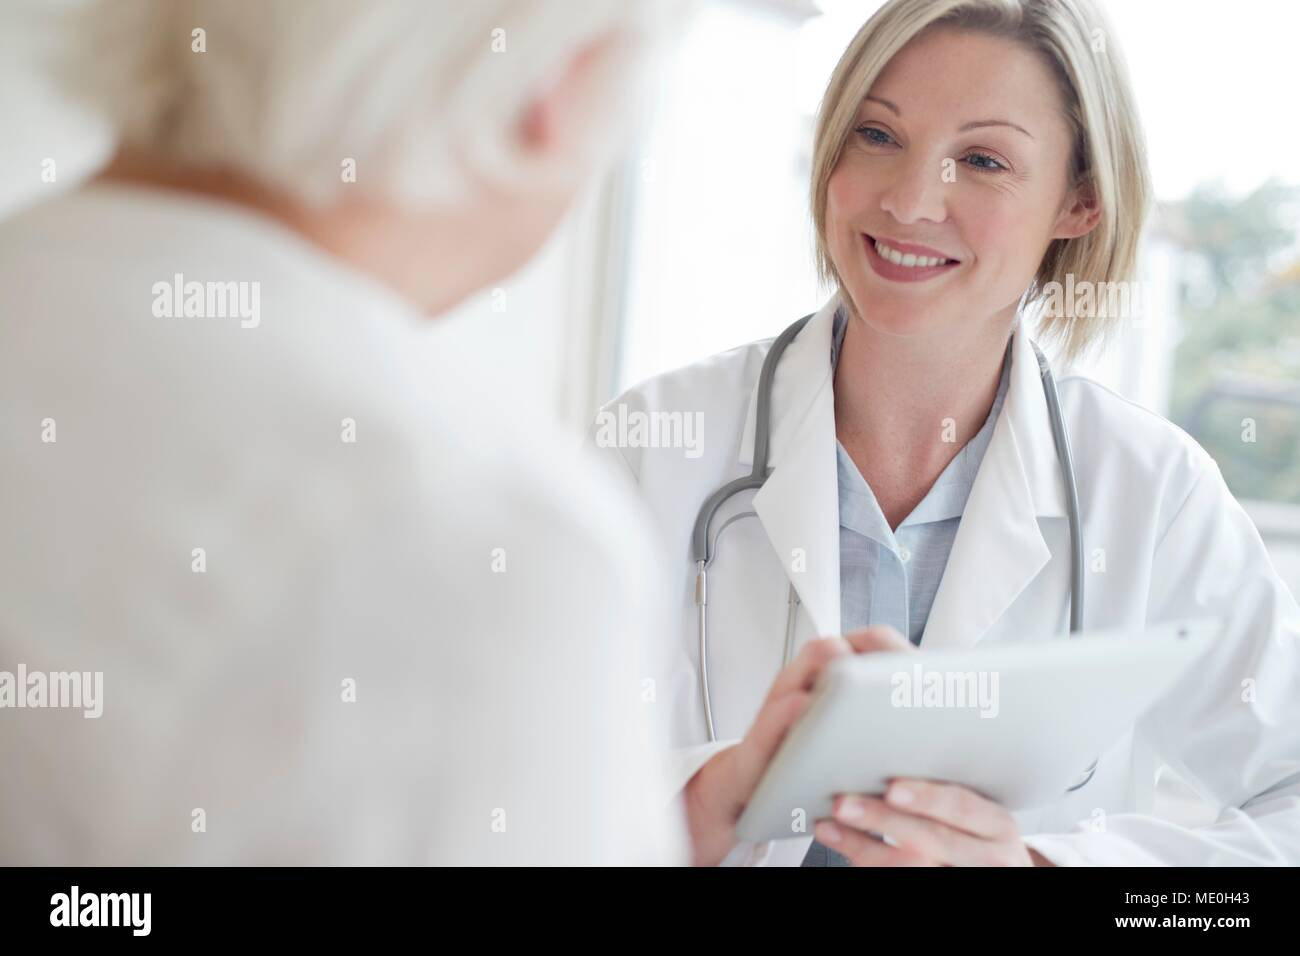 Doctor using digital tablet with patient. Banque D'Images